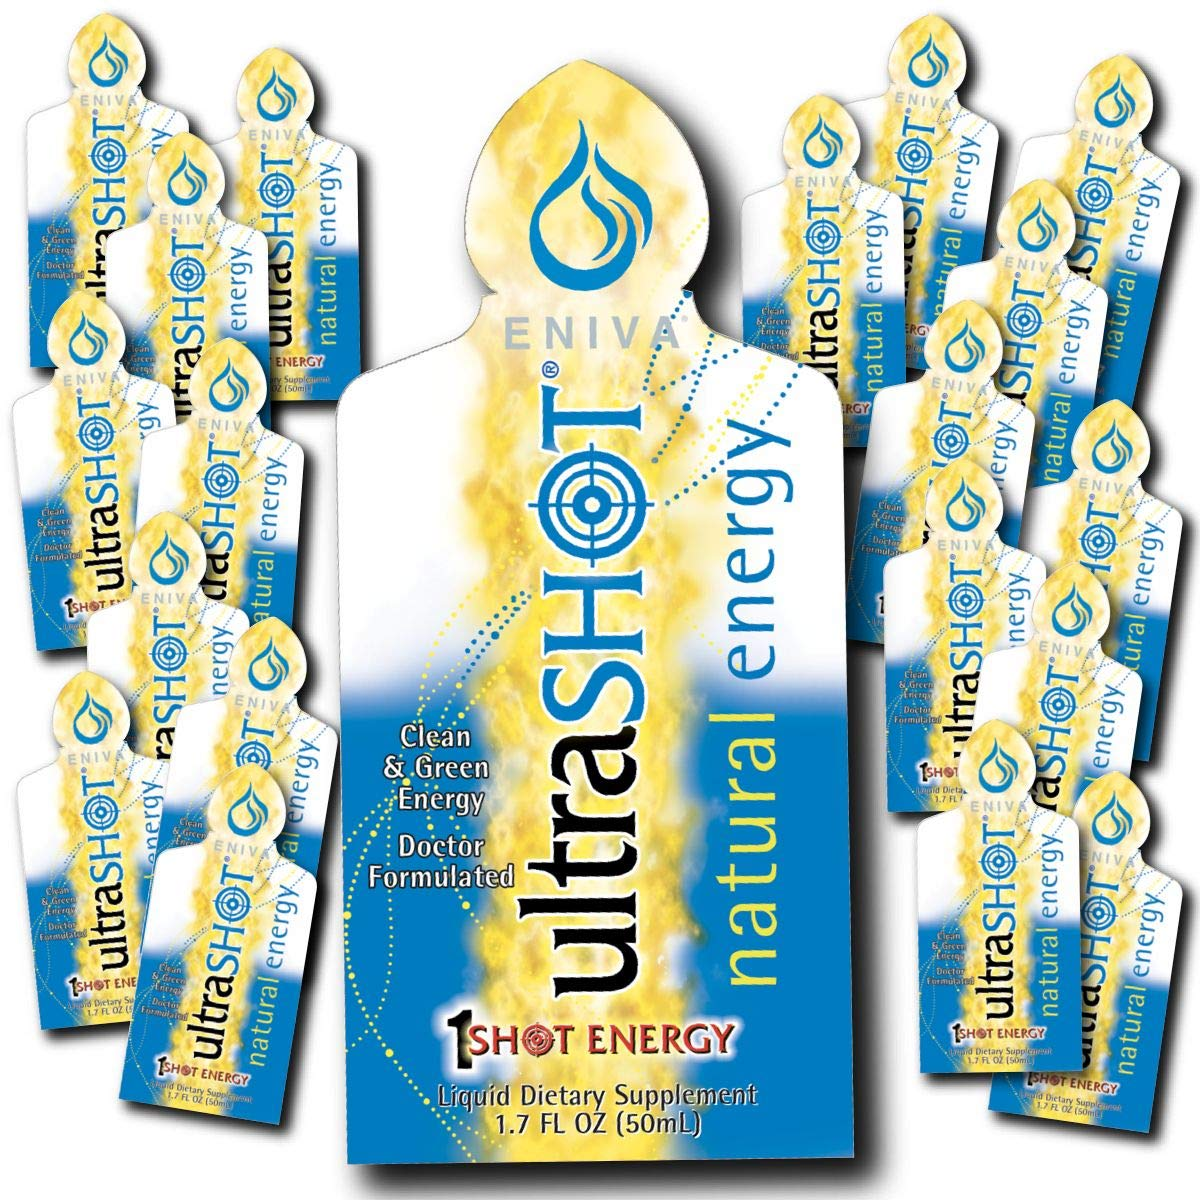 Coffee Replacement | Coffee Alternative | Ultrashot Healthy Energy by Eniva | Dr. Formulated (20 on-The-go Packets per Box)